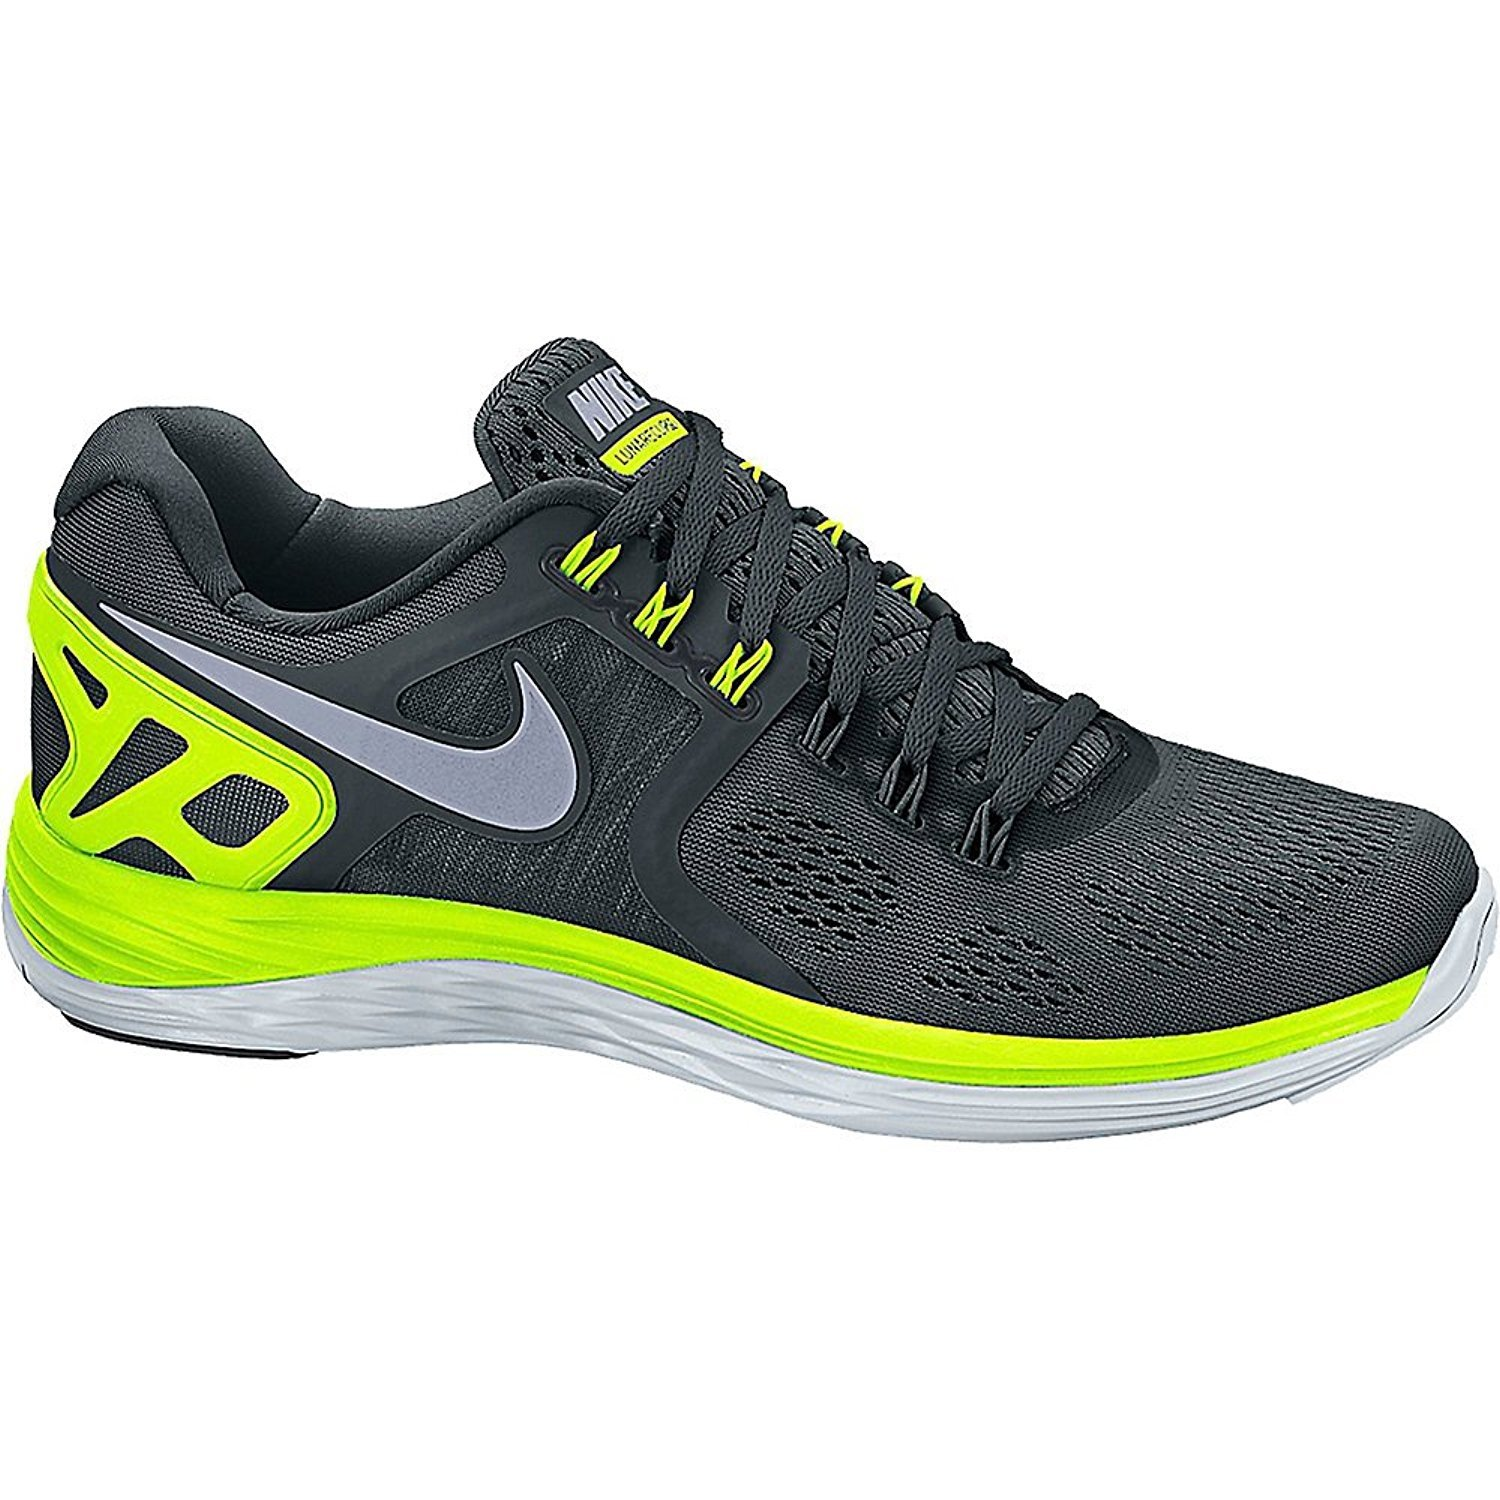 Nike Men's Lunar Eclipse 4 Running Shoes Running Green/Silver Color Size 11.5